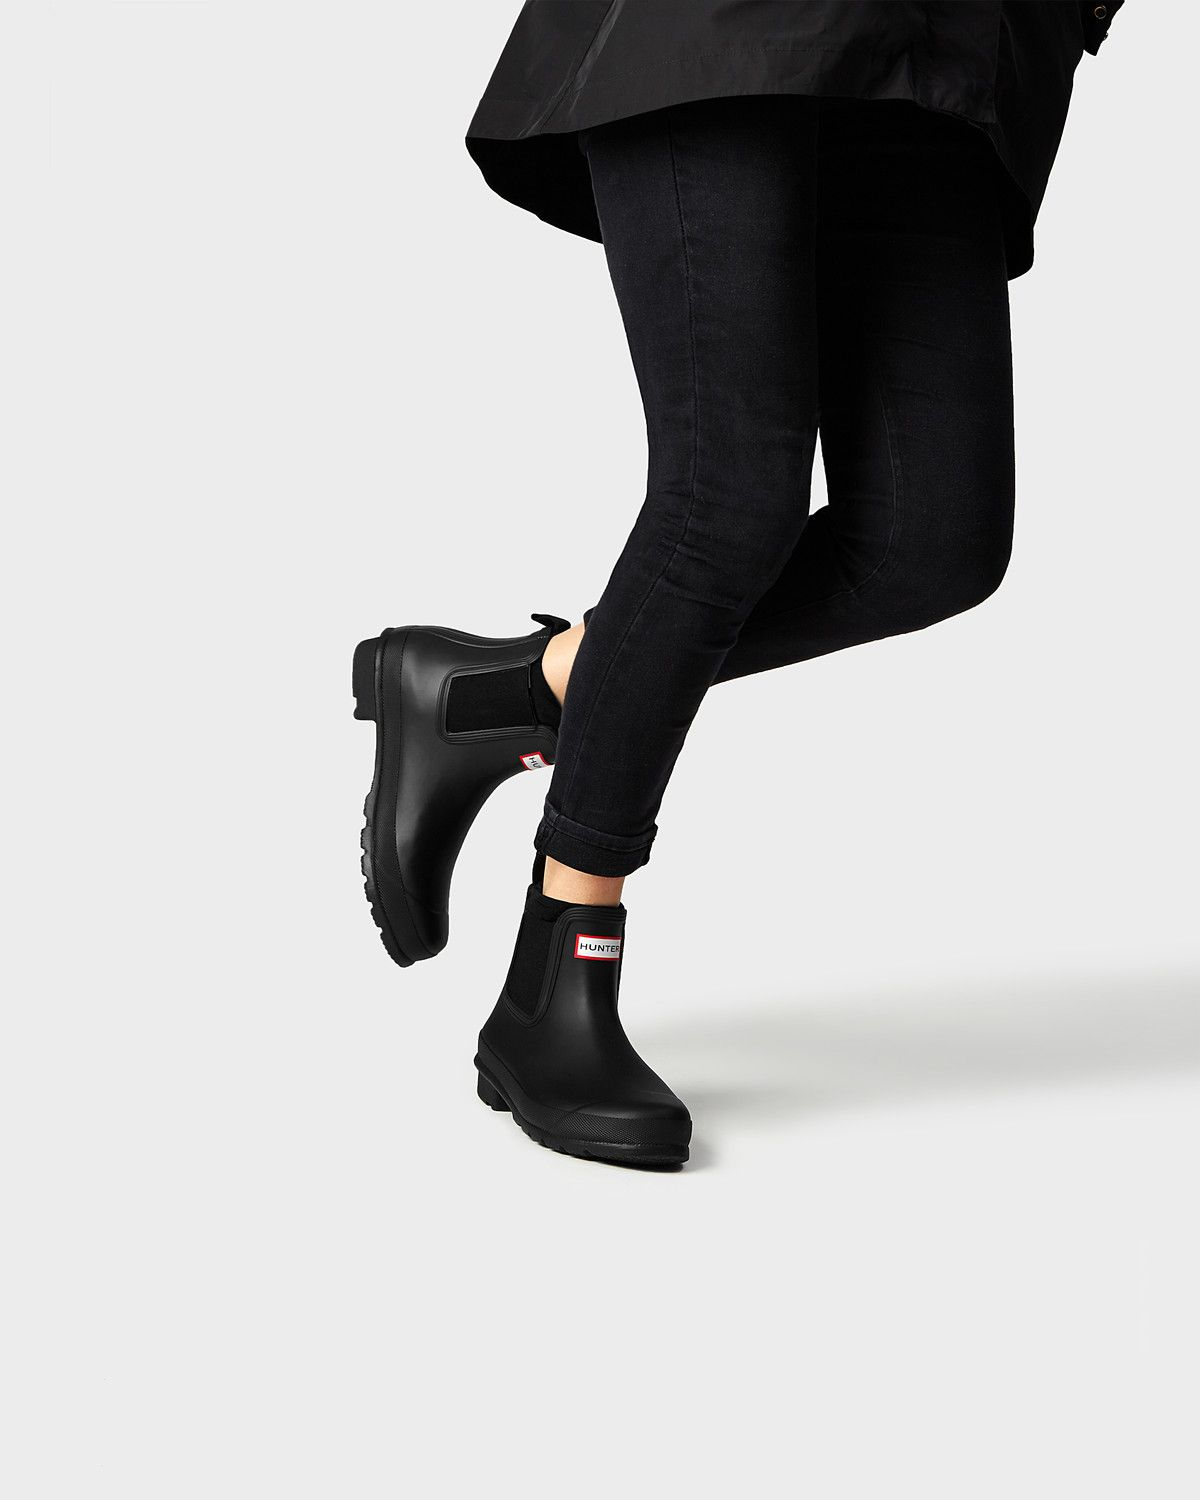 Hunter Short Rain Boots Chelsea Boot In Black Size 7 Chelsea Rain Boots Chelsea Boots Outfit Hunter Boots Outfit